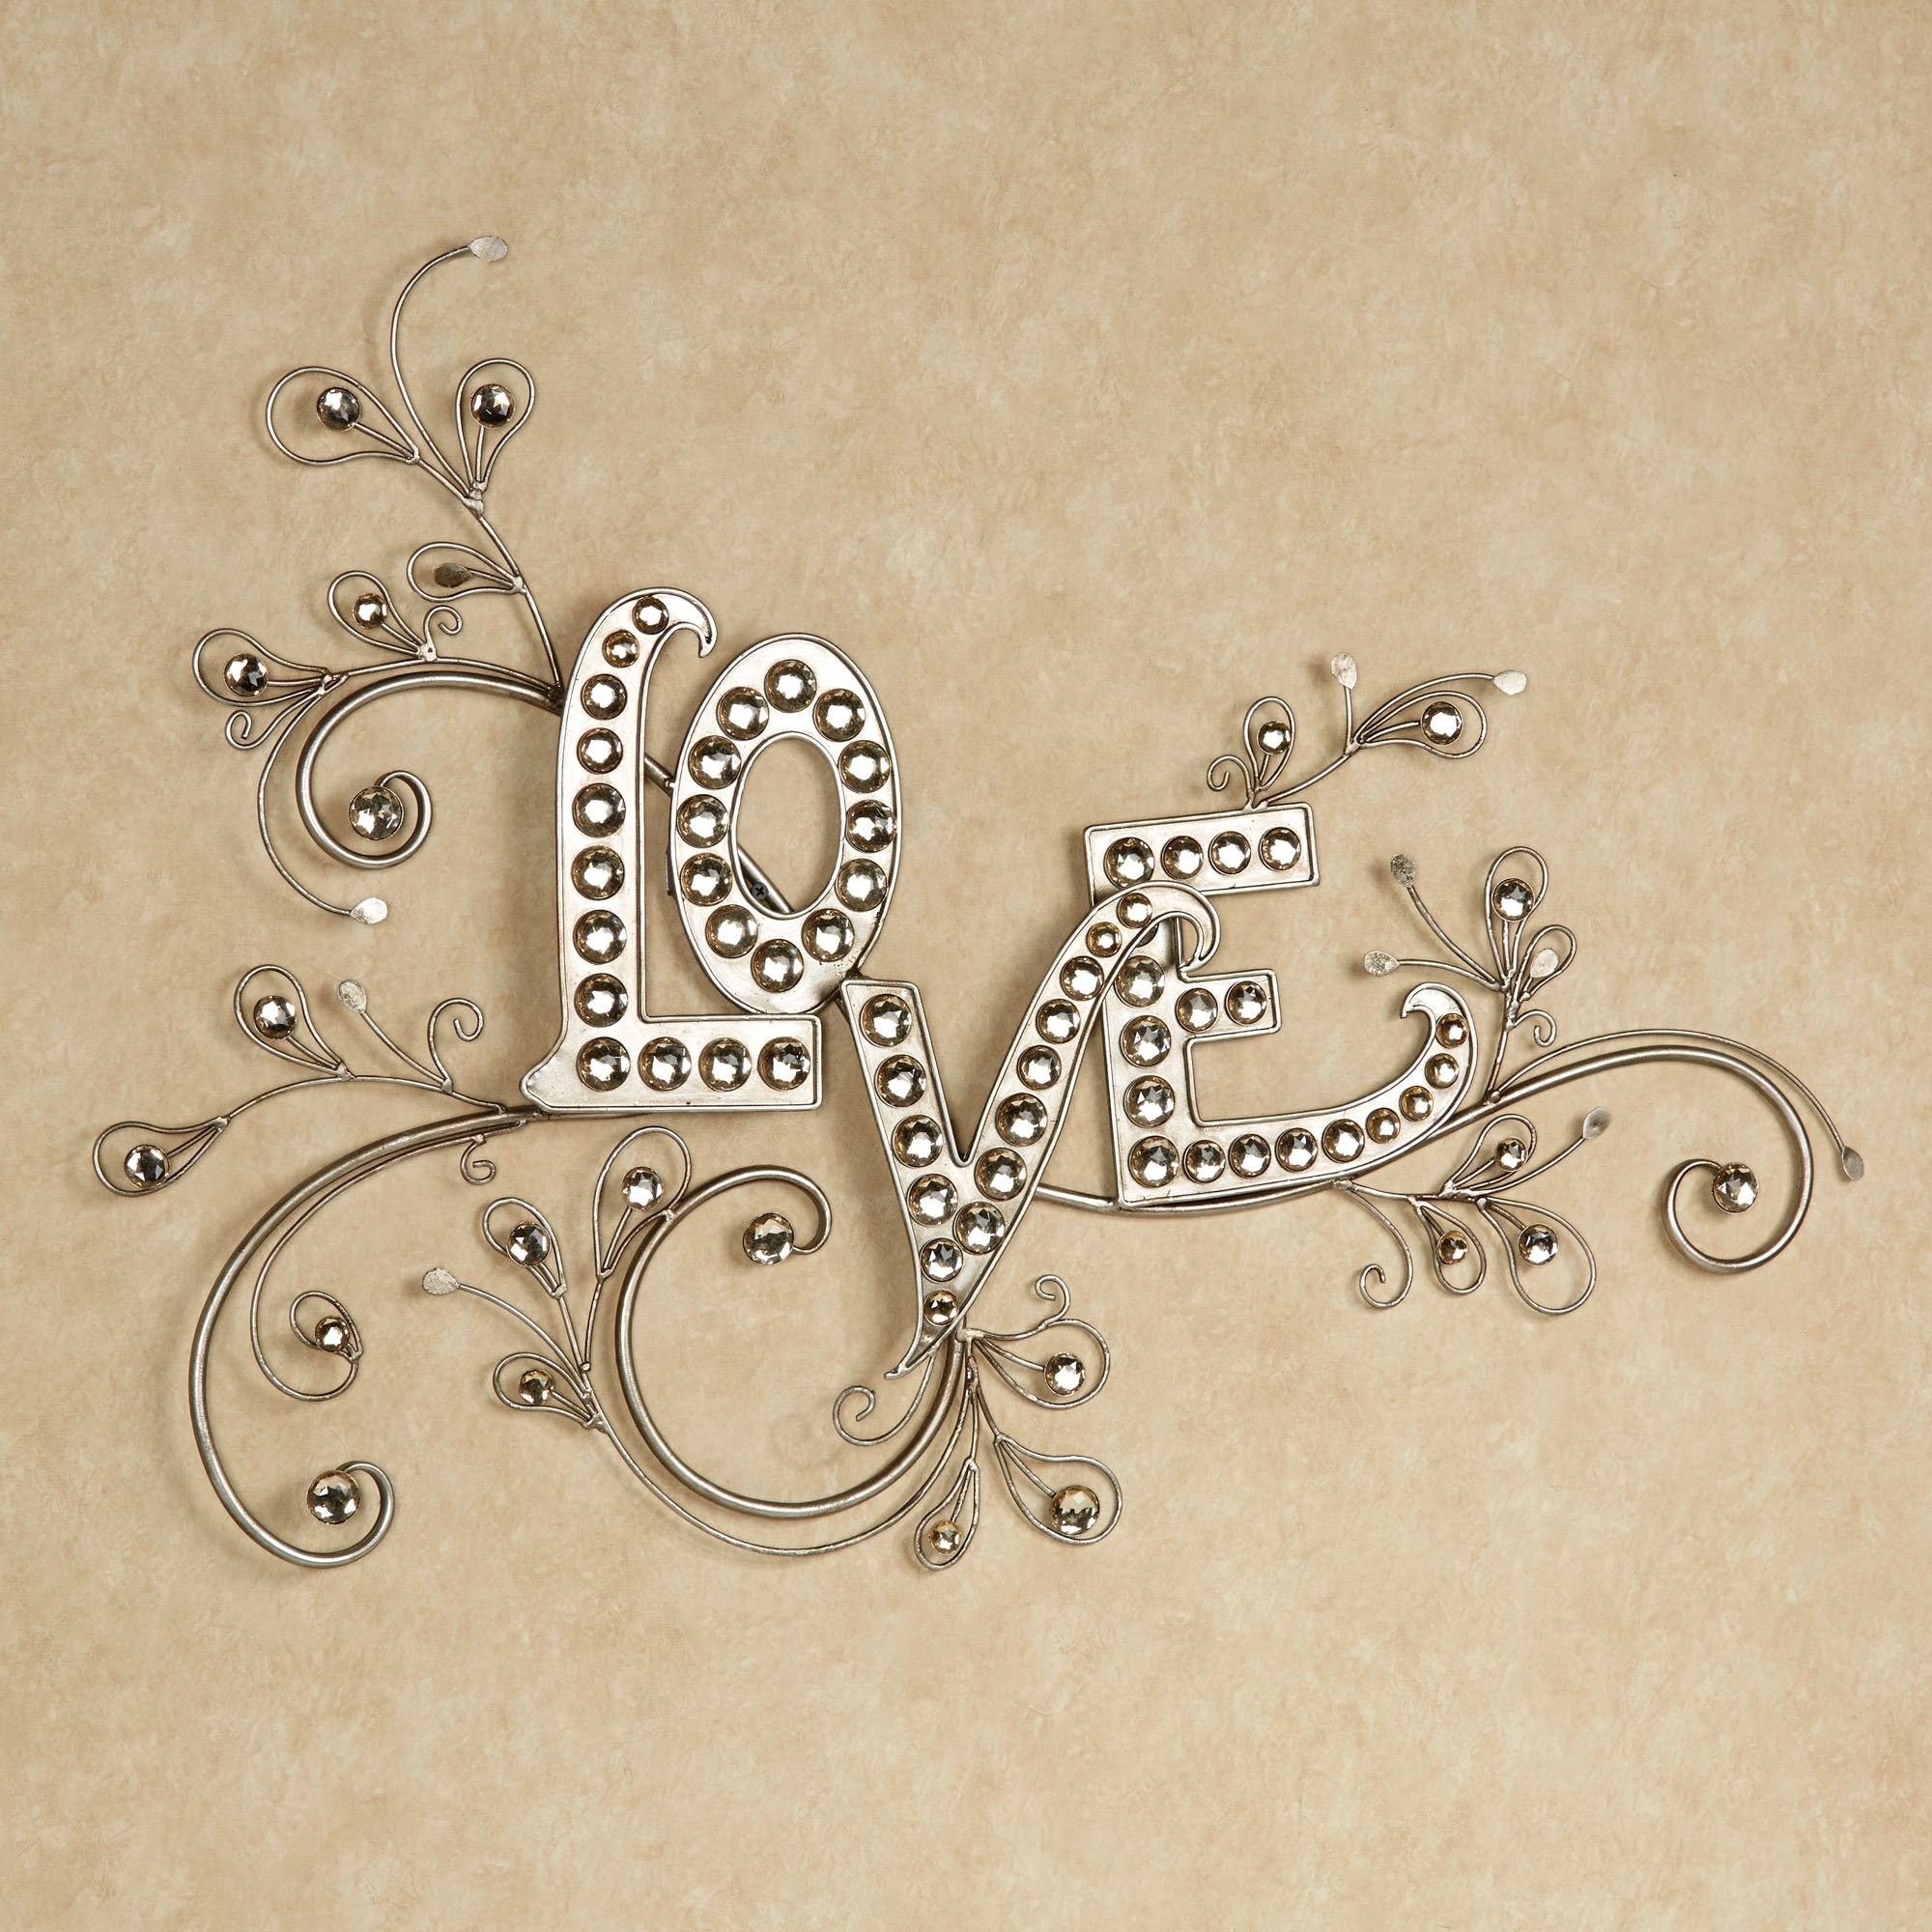 Creative Design Love Wall Decor Home Remodel Sparkling Gem Word Art Regarding Recent Kohl\'s Metal Wall Art (Gallery 10 of 20)